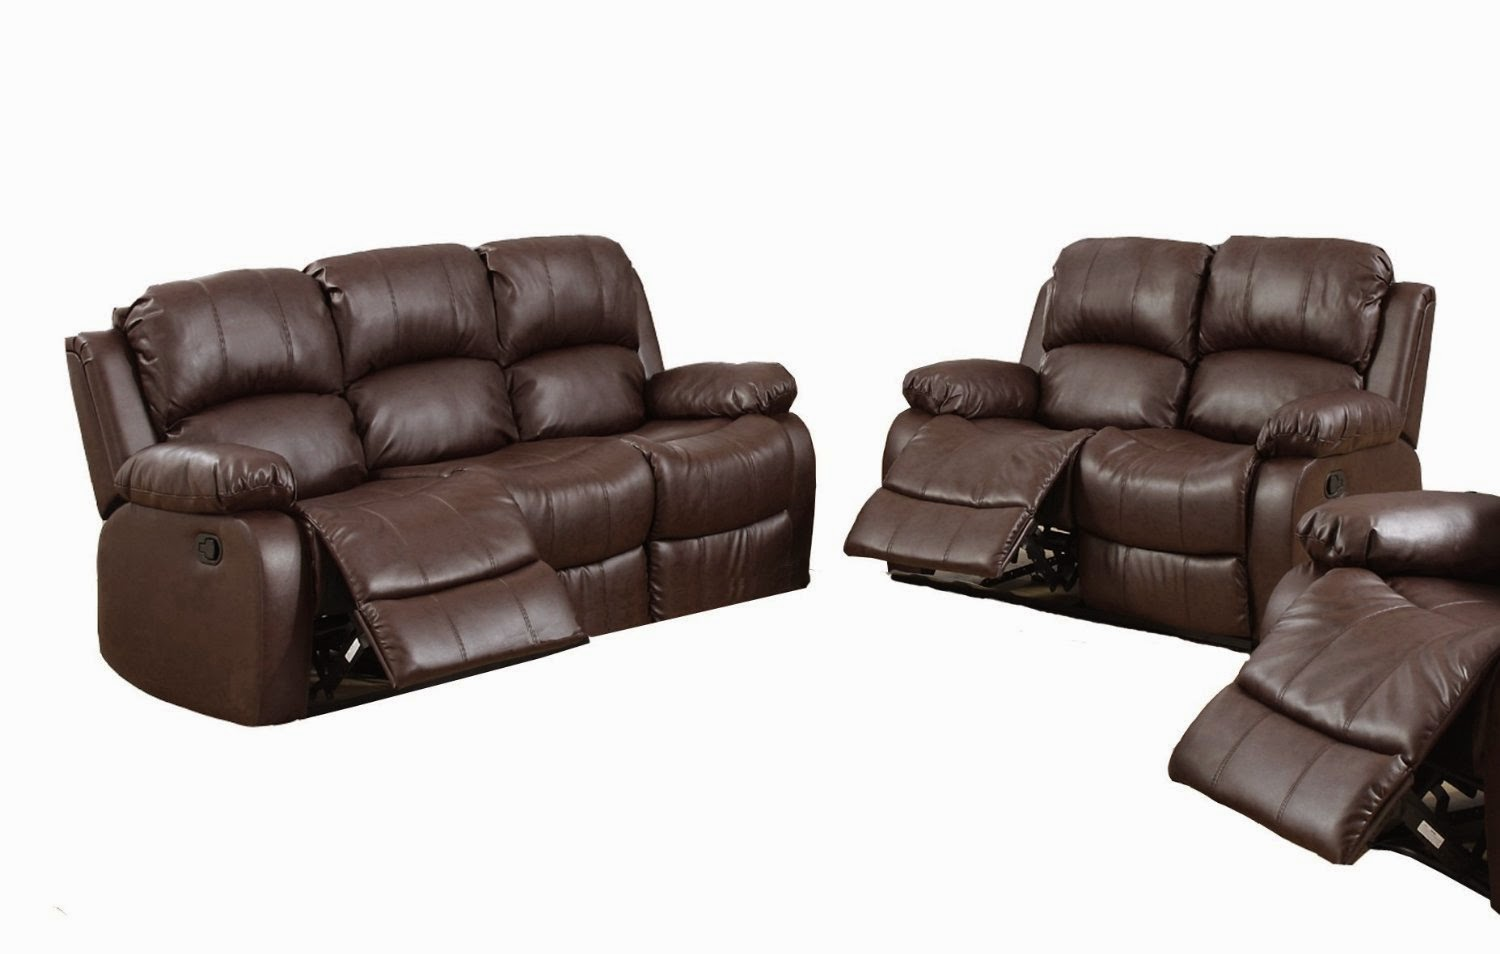 Reclining Loveseat Sale Reclining Sofa Loveseat Set